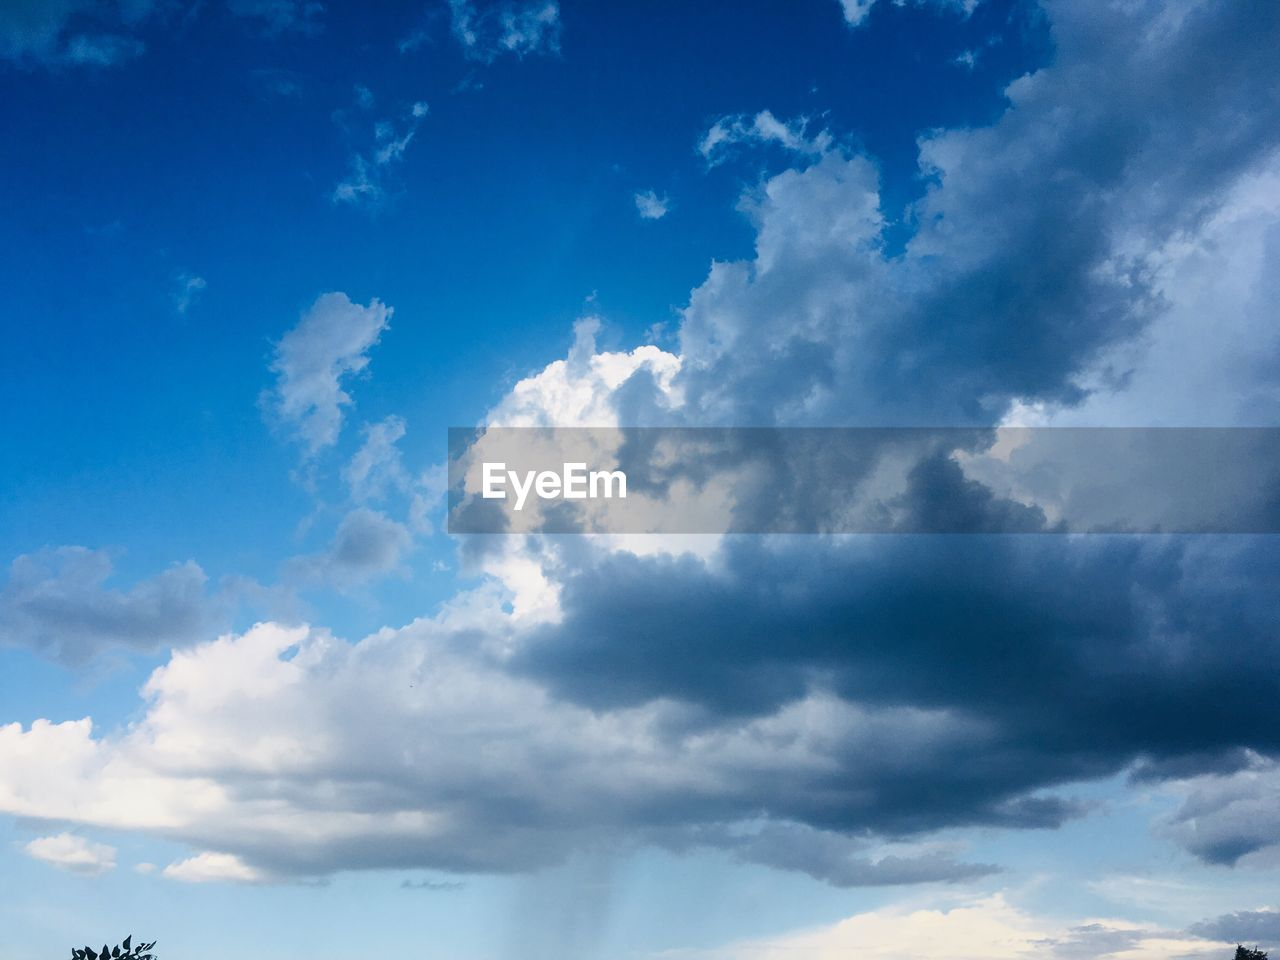 cloud - sky, sky, beauty in nature, low angle view, scenics - nature, tranquility, nature, no people, blue, tranquil scene, day, outdoors, backgrounds, idyllic, white color, cloudscape, sunlight, non-urban scene, environment, meteorology